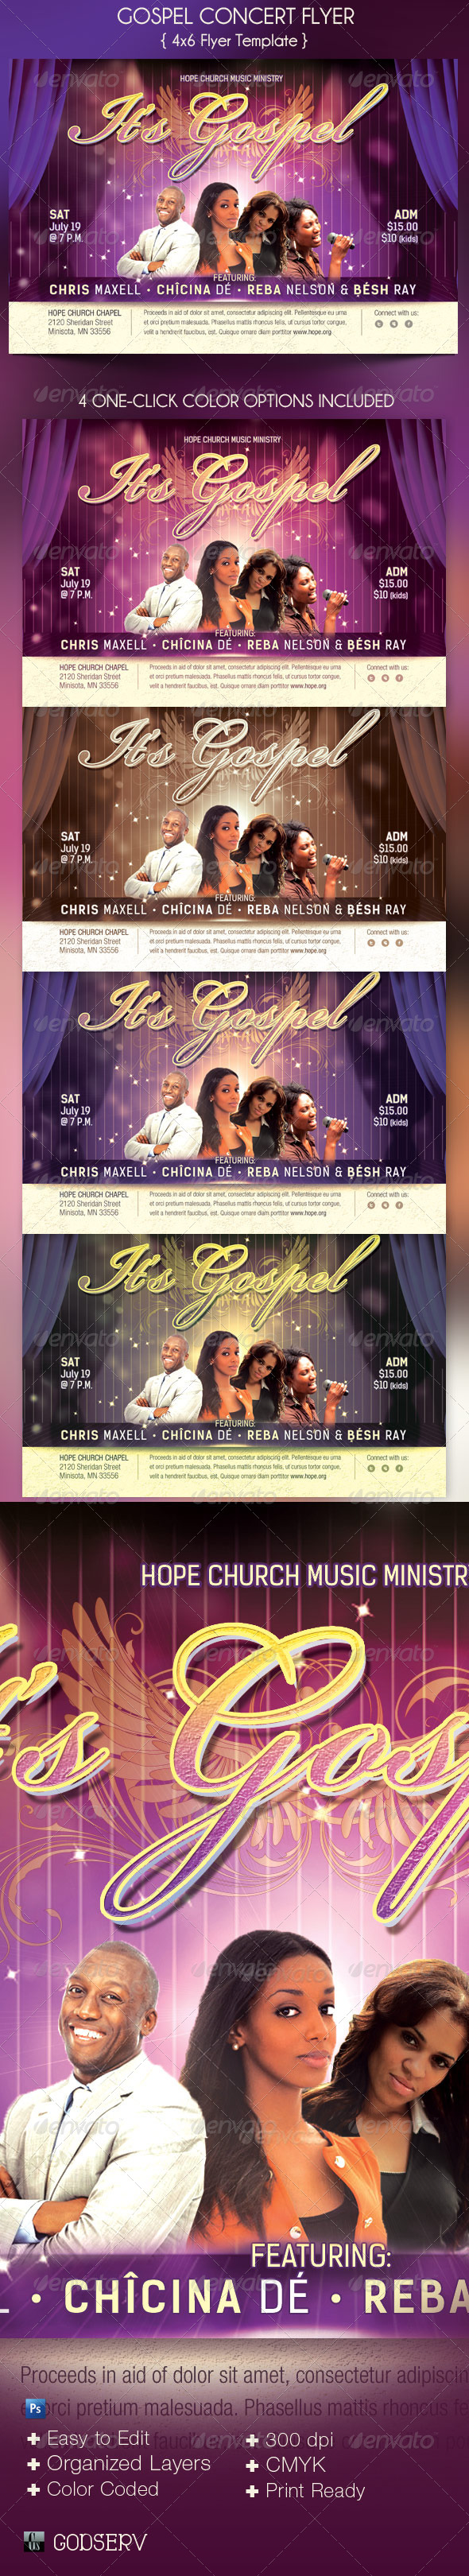 GraphicRiver Gospel Concert Church Flyer Template 4804551